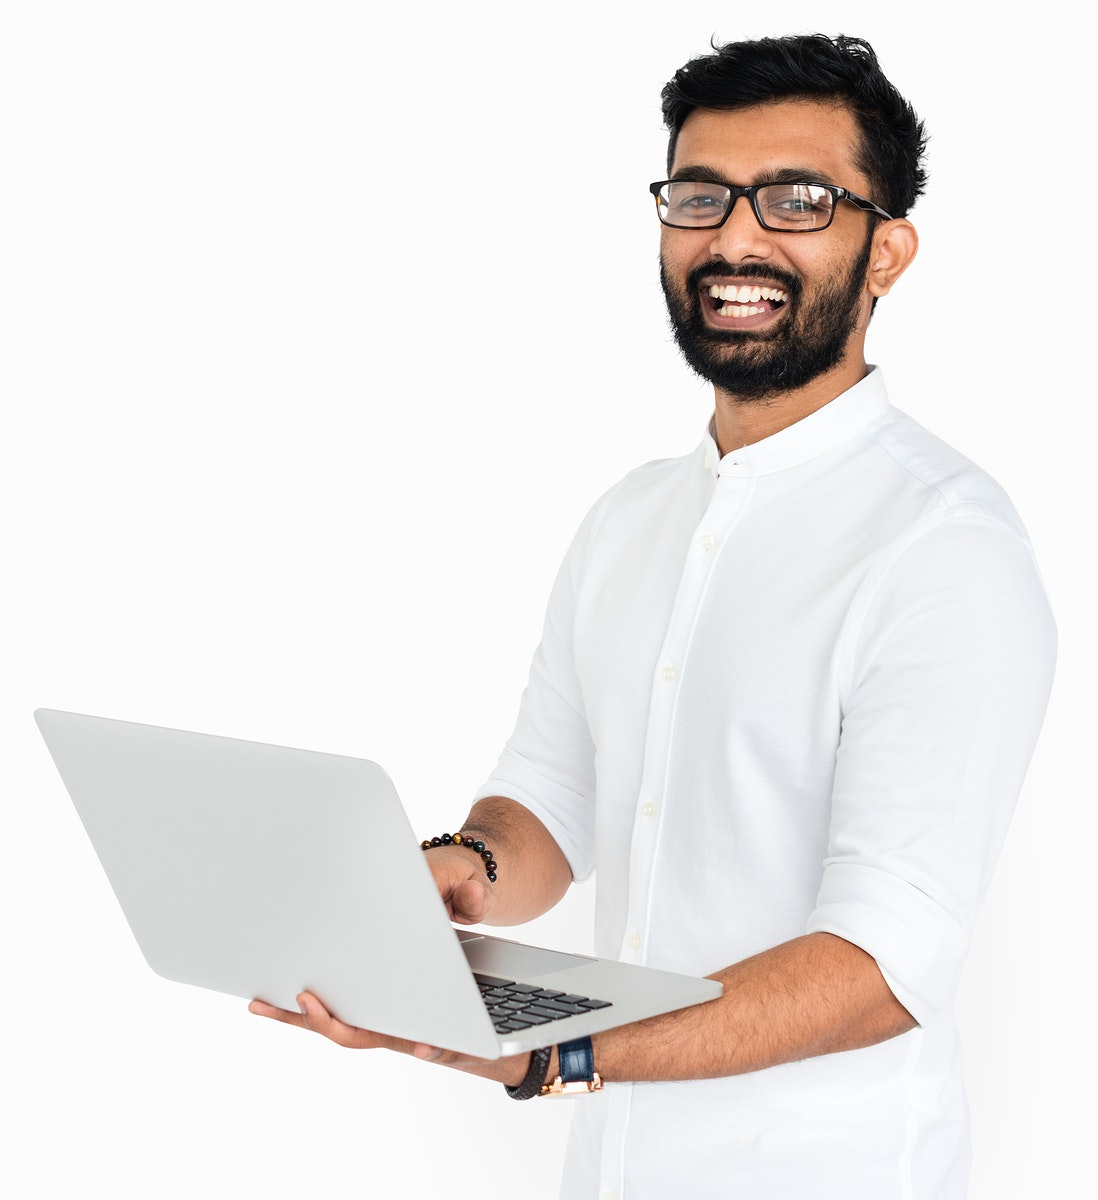 Smiling Indian guy with a computer